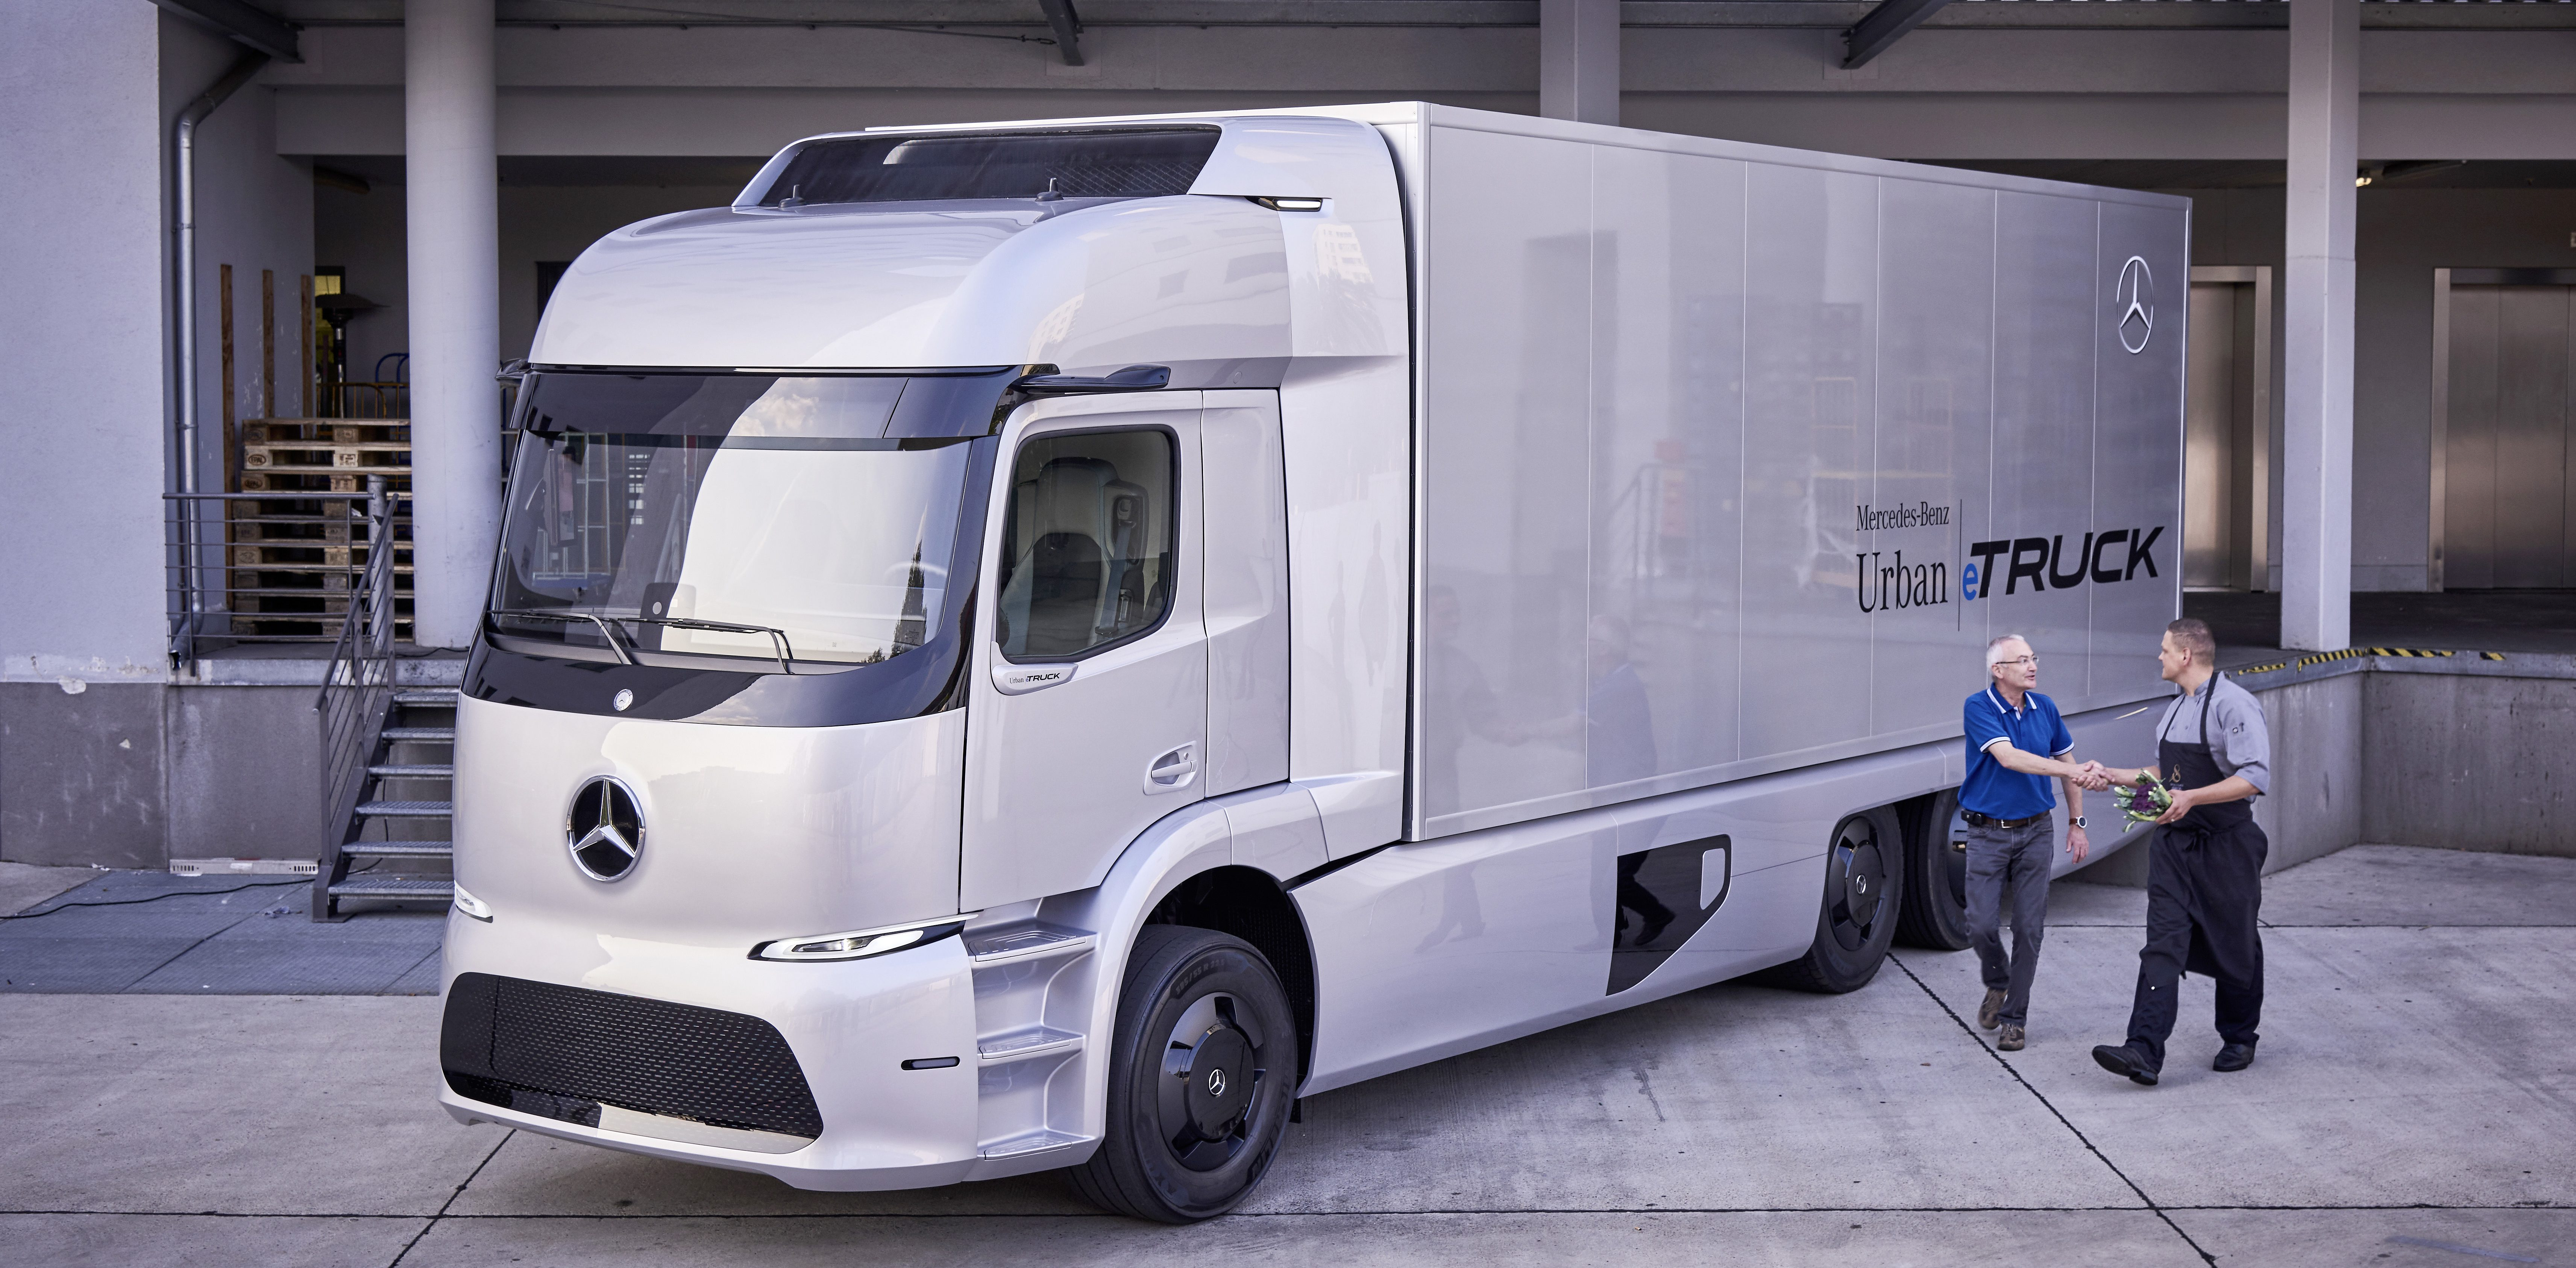 The prototype of the Urban eTruck electric truck from Mercedes-Benz 57